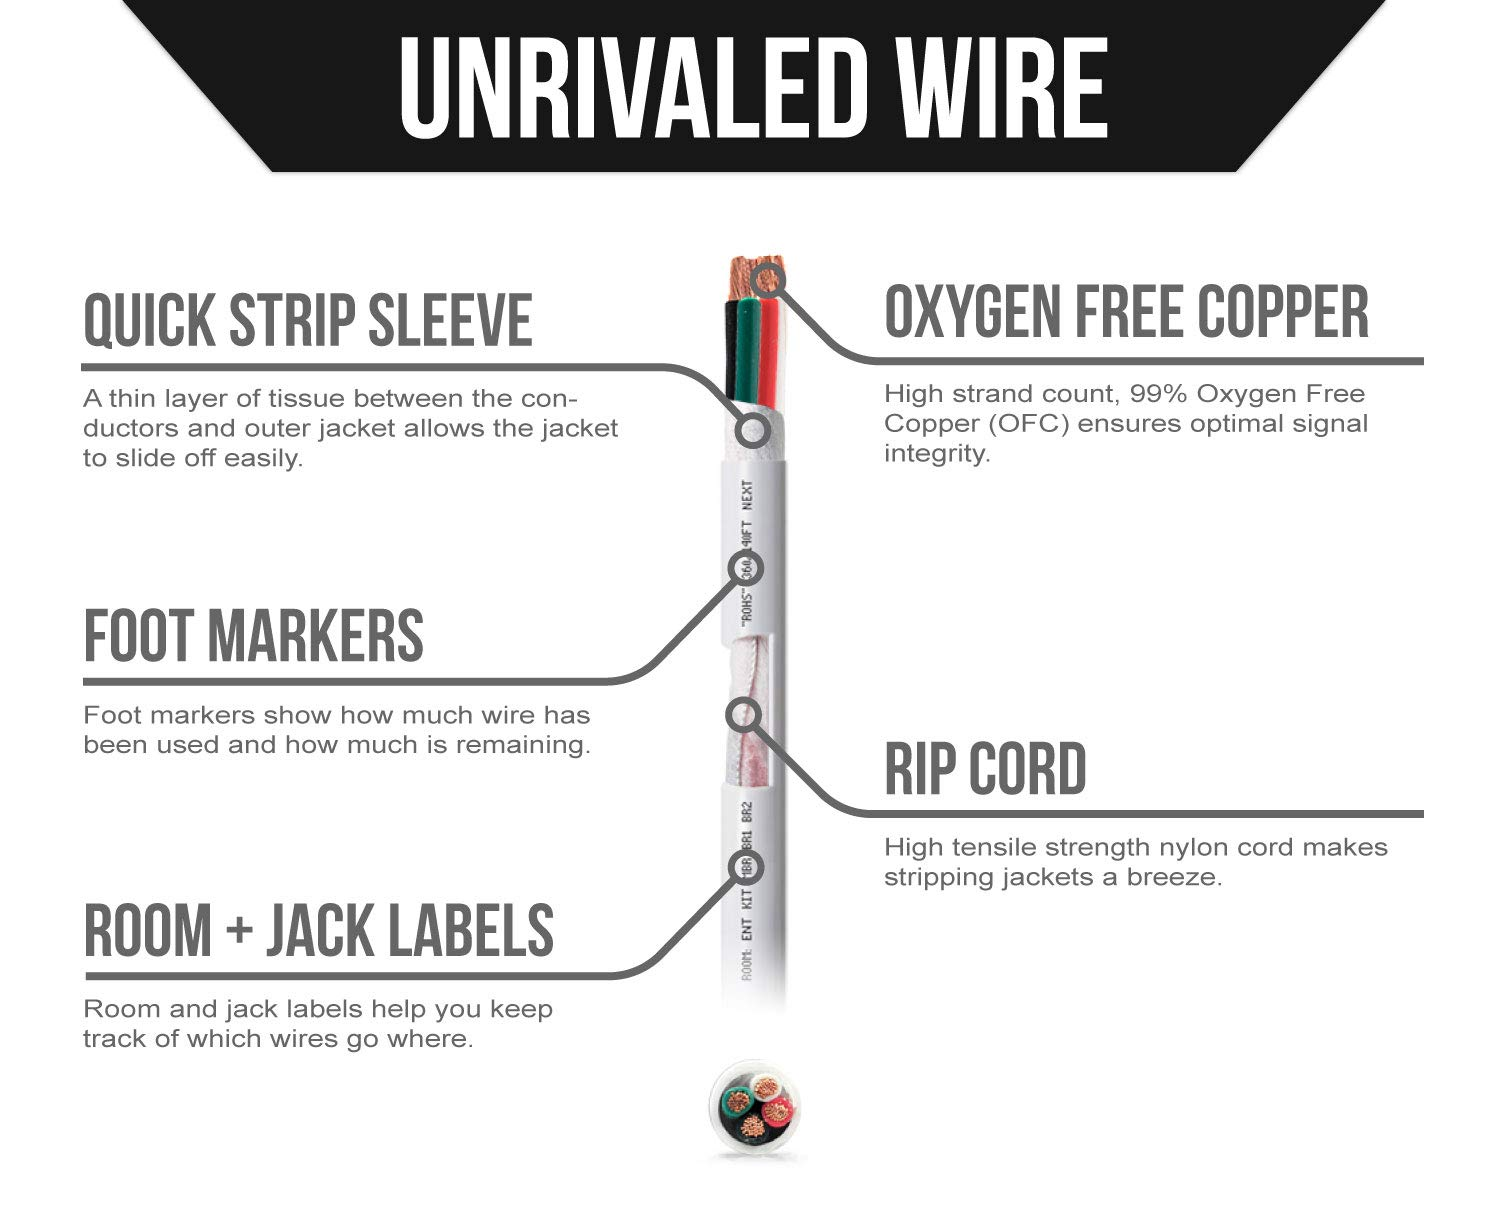 Rated White Oxygen-Free Copper and Outdoor//In Ground 16 AWG//Gauge 2 Conductor Direct Burial UL Listed in Wall - 100 Foot Cable Spool CL2//CL3 OFC Next 16//2 Speaker Wire